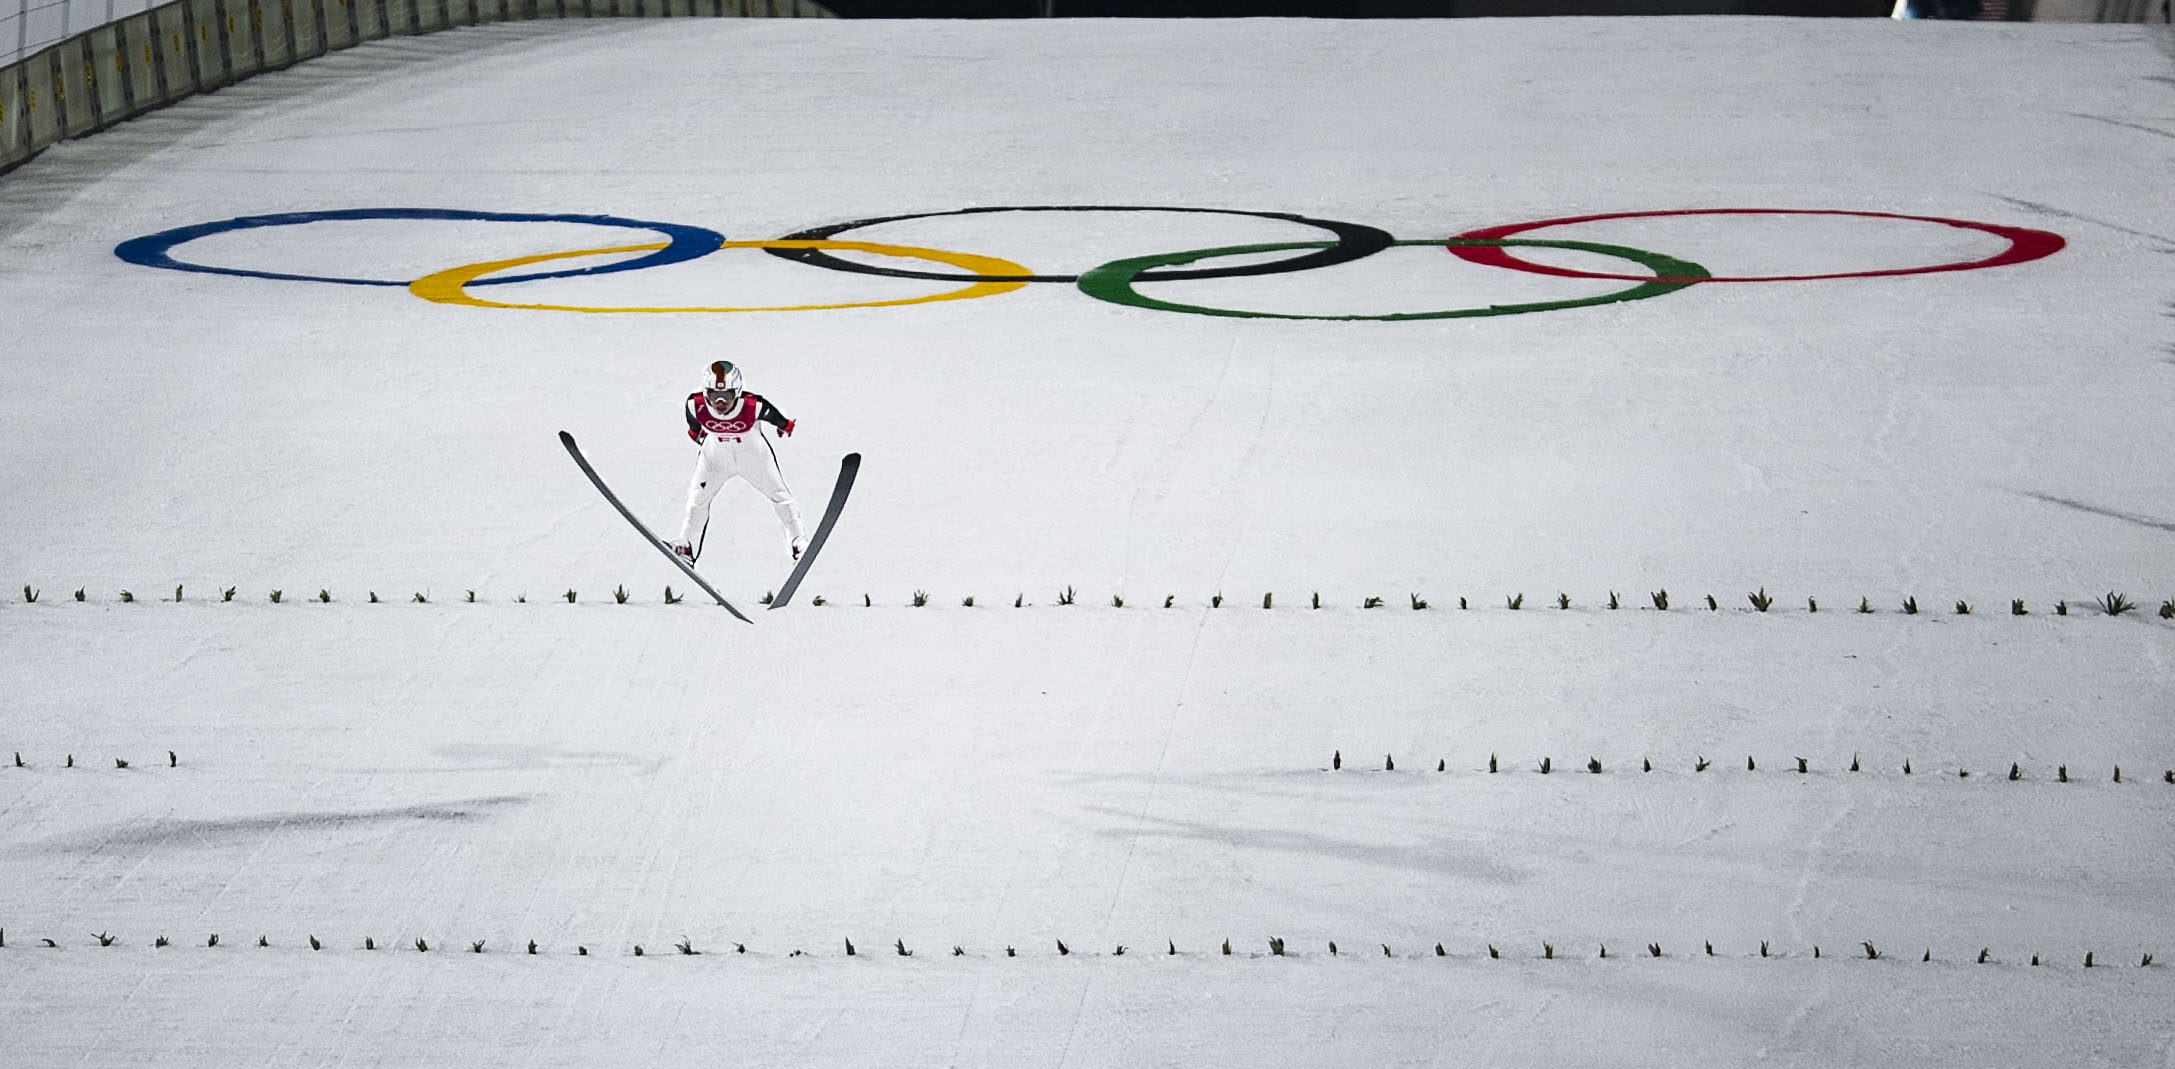 A ski jumper lands on the hill at PyeongChang Ski Jumping Center, South Korea, Feb. 16 during the 2018 Winter Games.